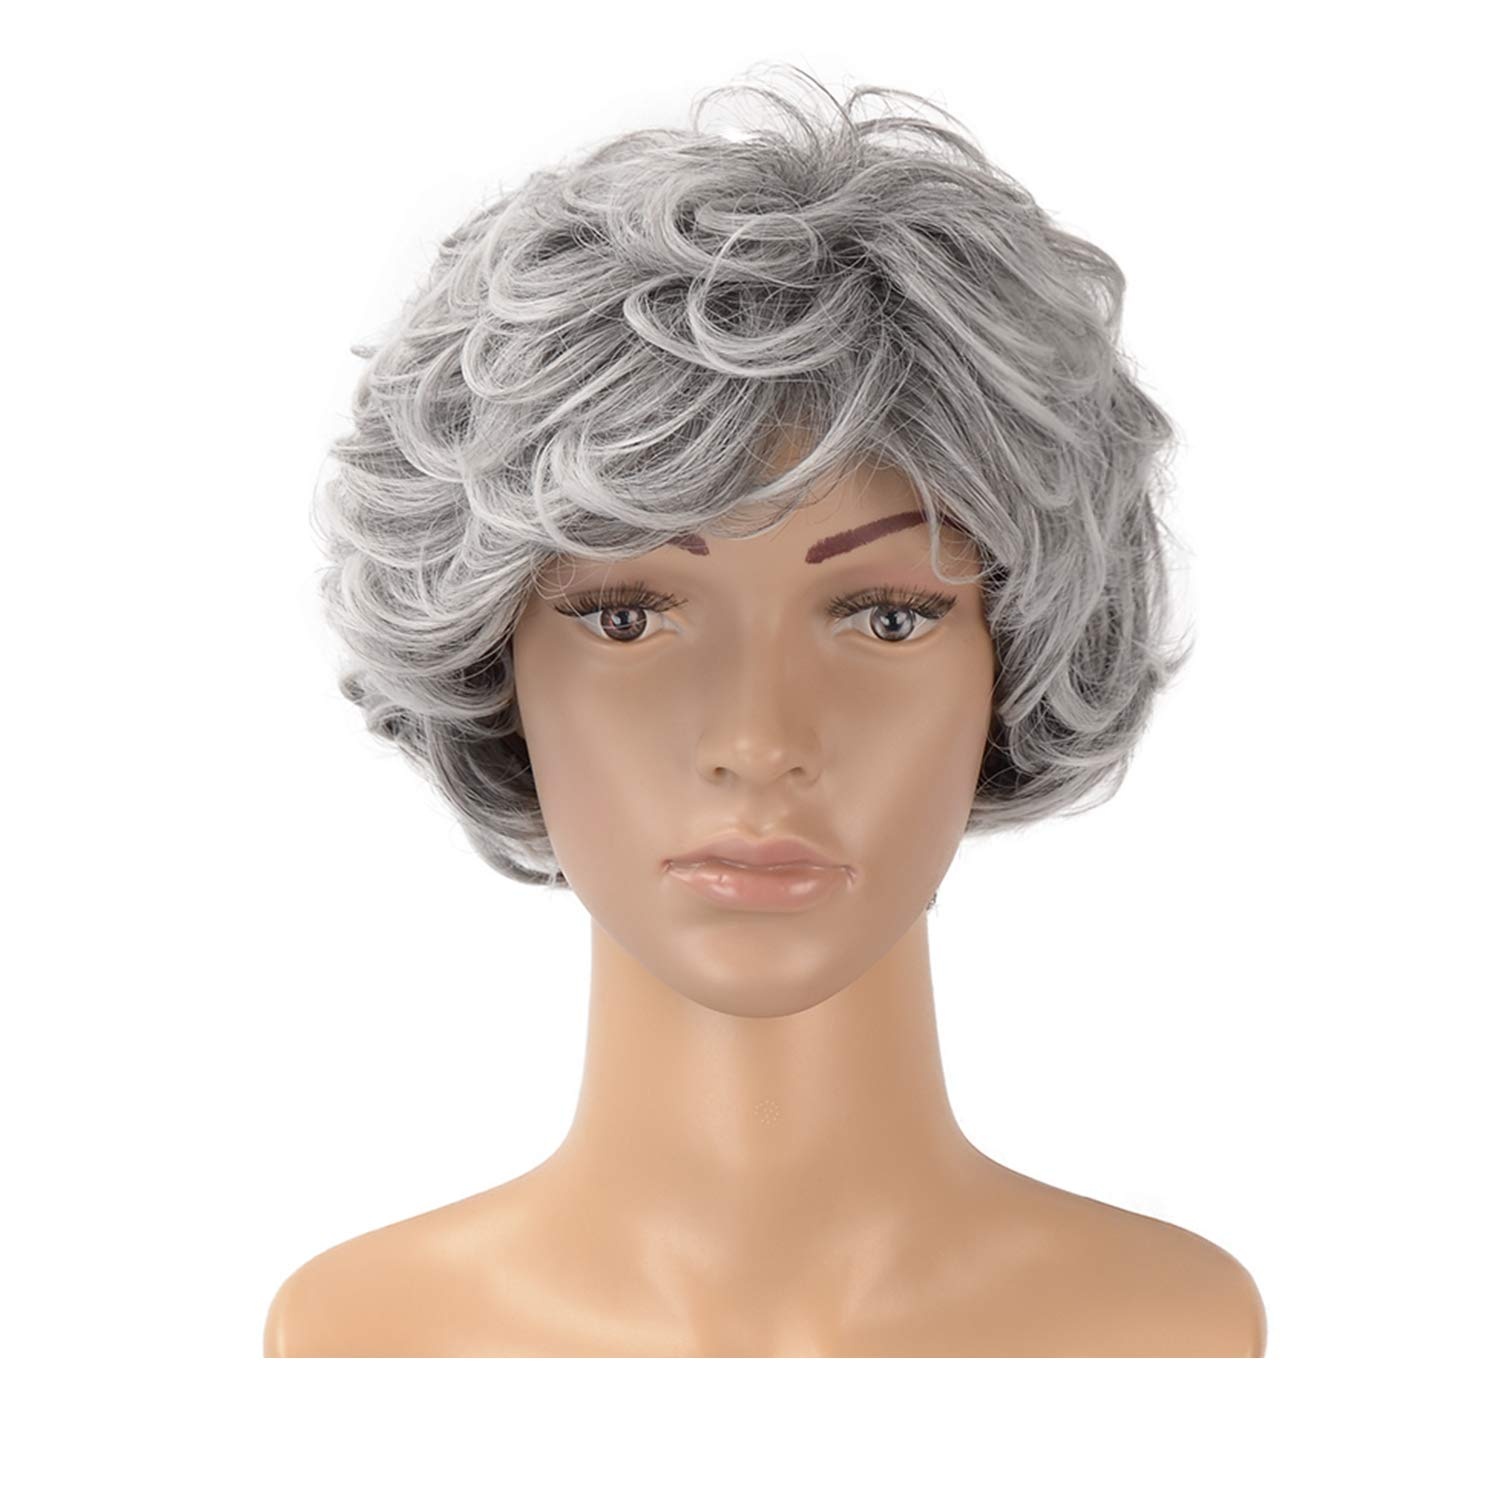 Hawkko Curly Short Synthetic Wigs for Women Natural Looking Cosplay Daily Party Wig(Gray White)